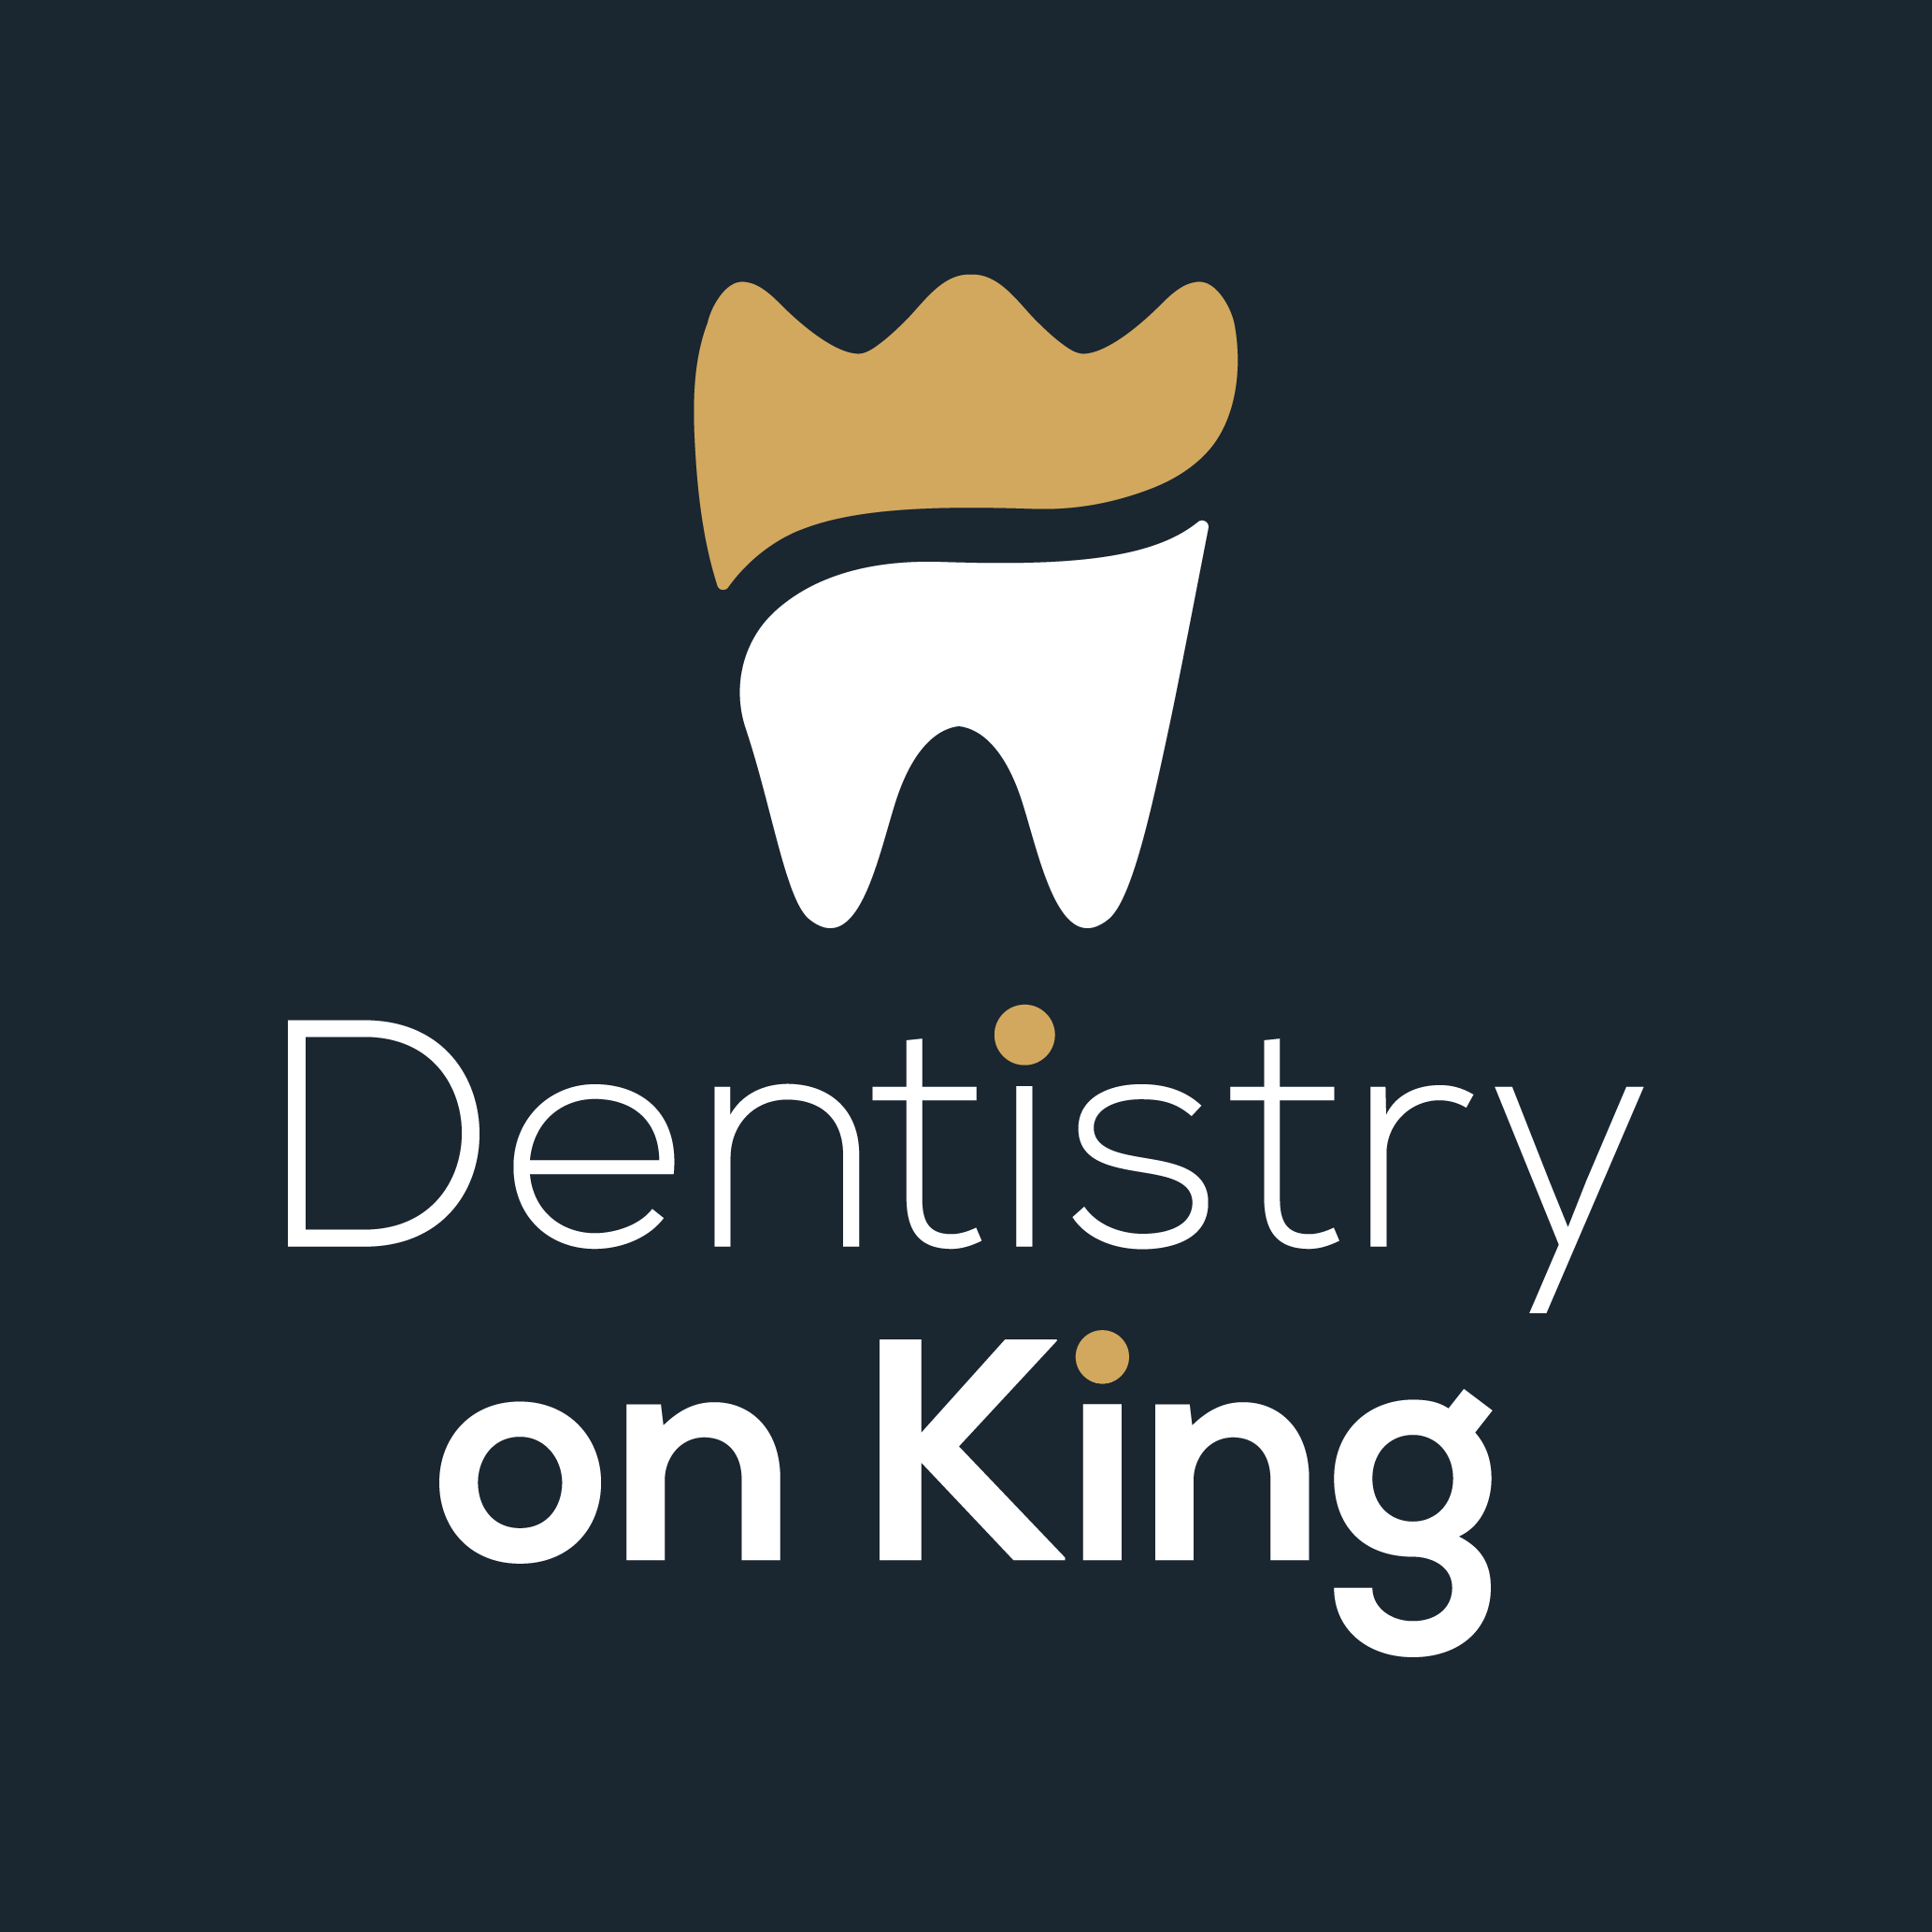 desntisty on king scroll logo